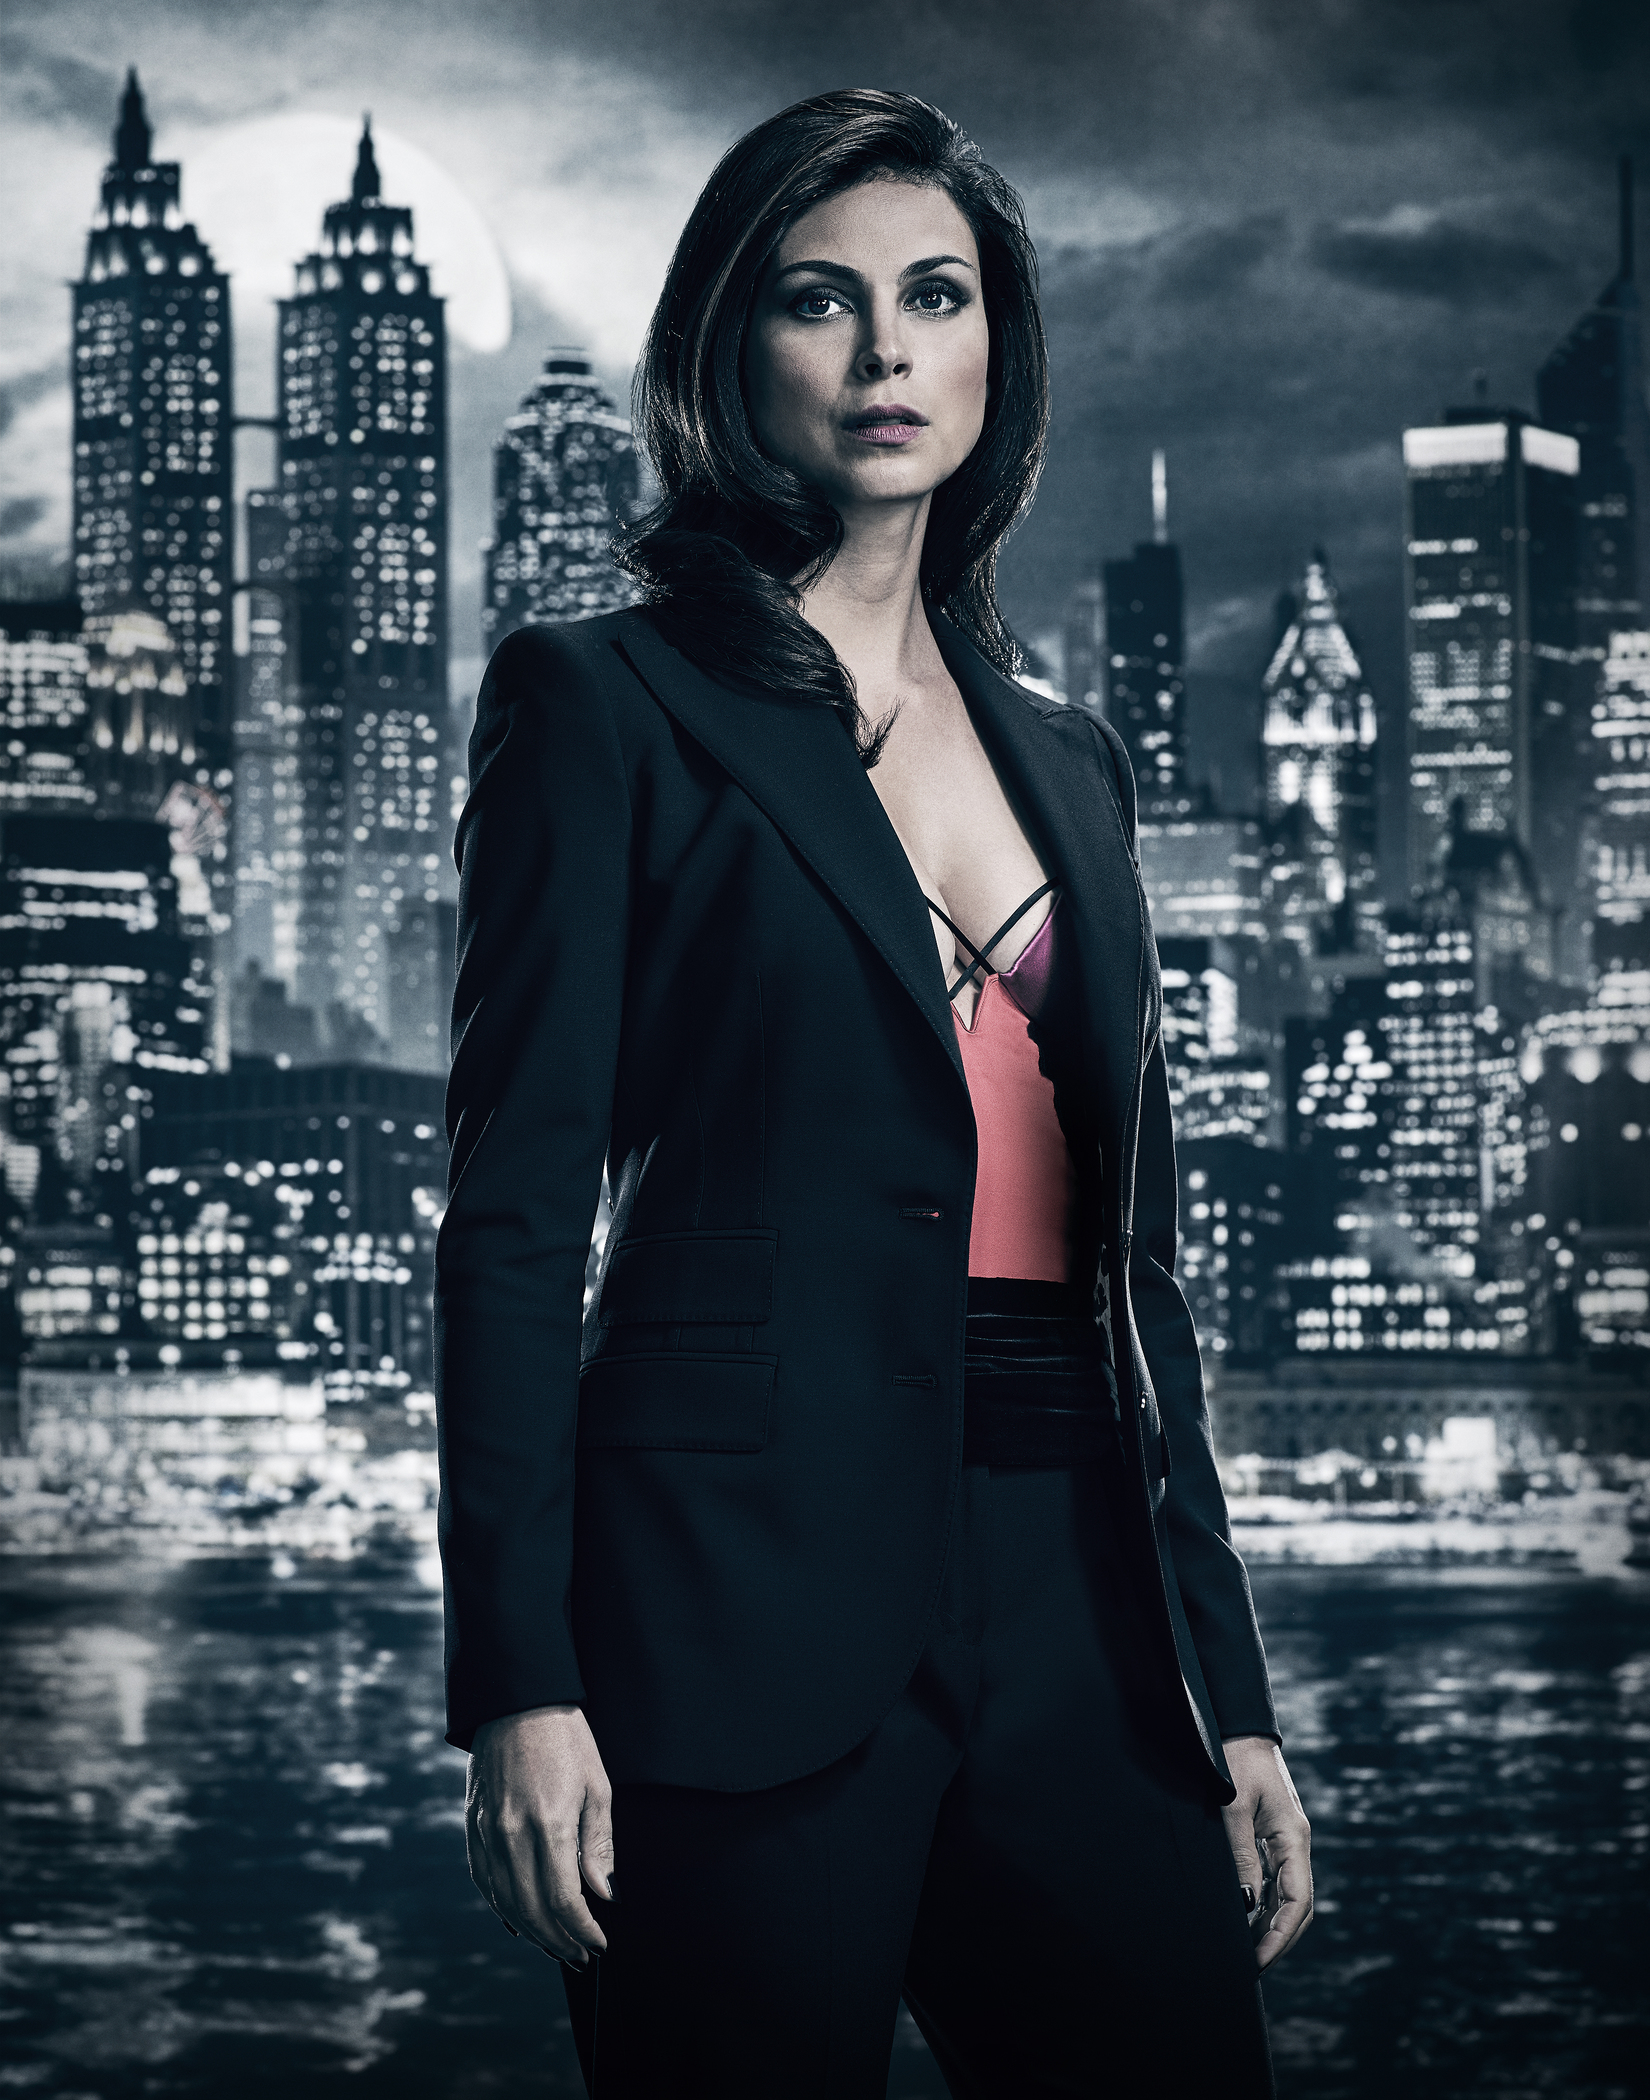 GOTHAM: MORENA BACCARIN©2017 Fox Broadcasting Co. Cr: TOMMY GARCIA / FOX